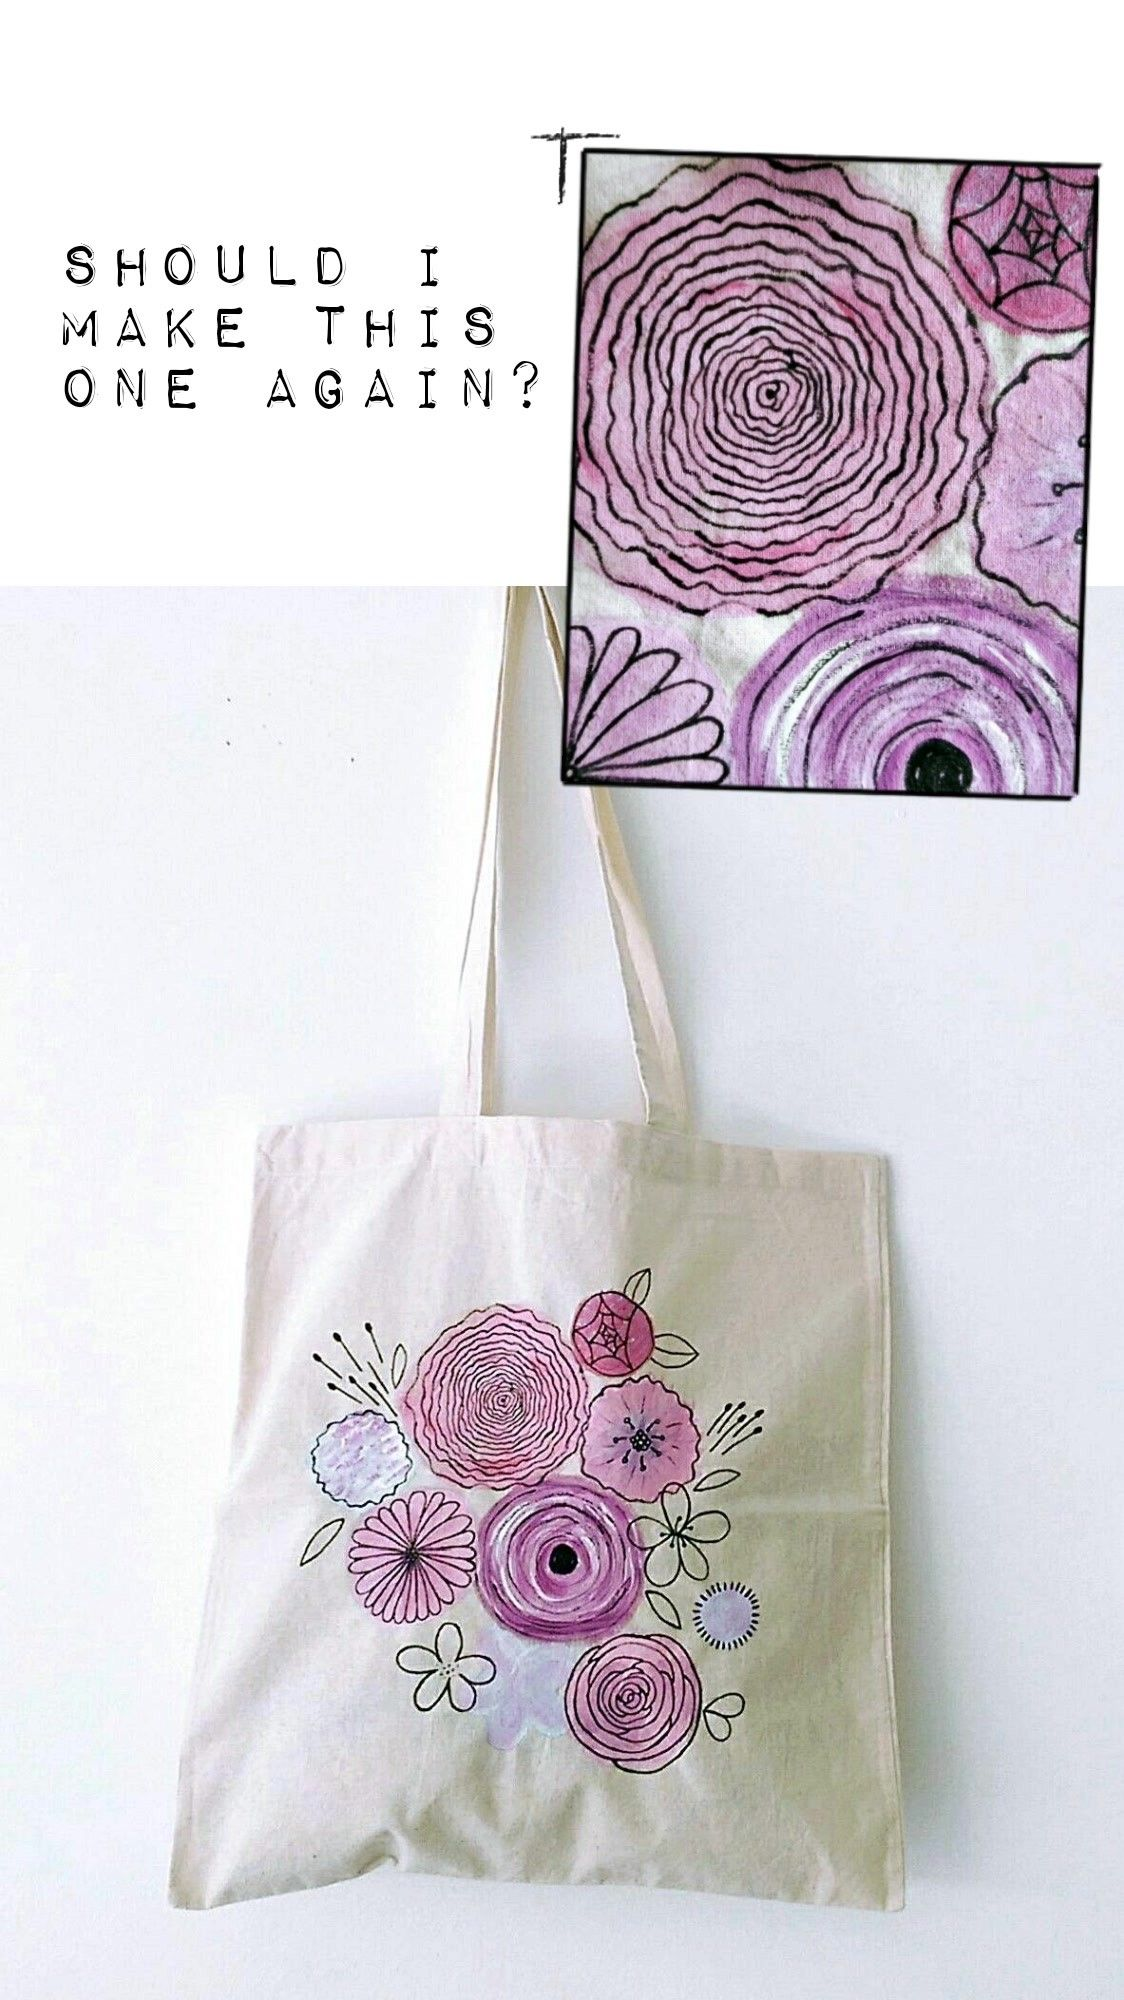 personalized tote bags - Handpainted bags, Printed bags, Personalized tote bags